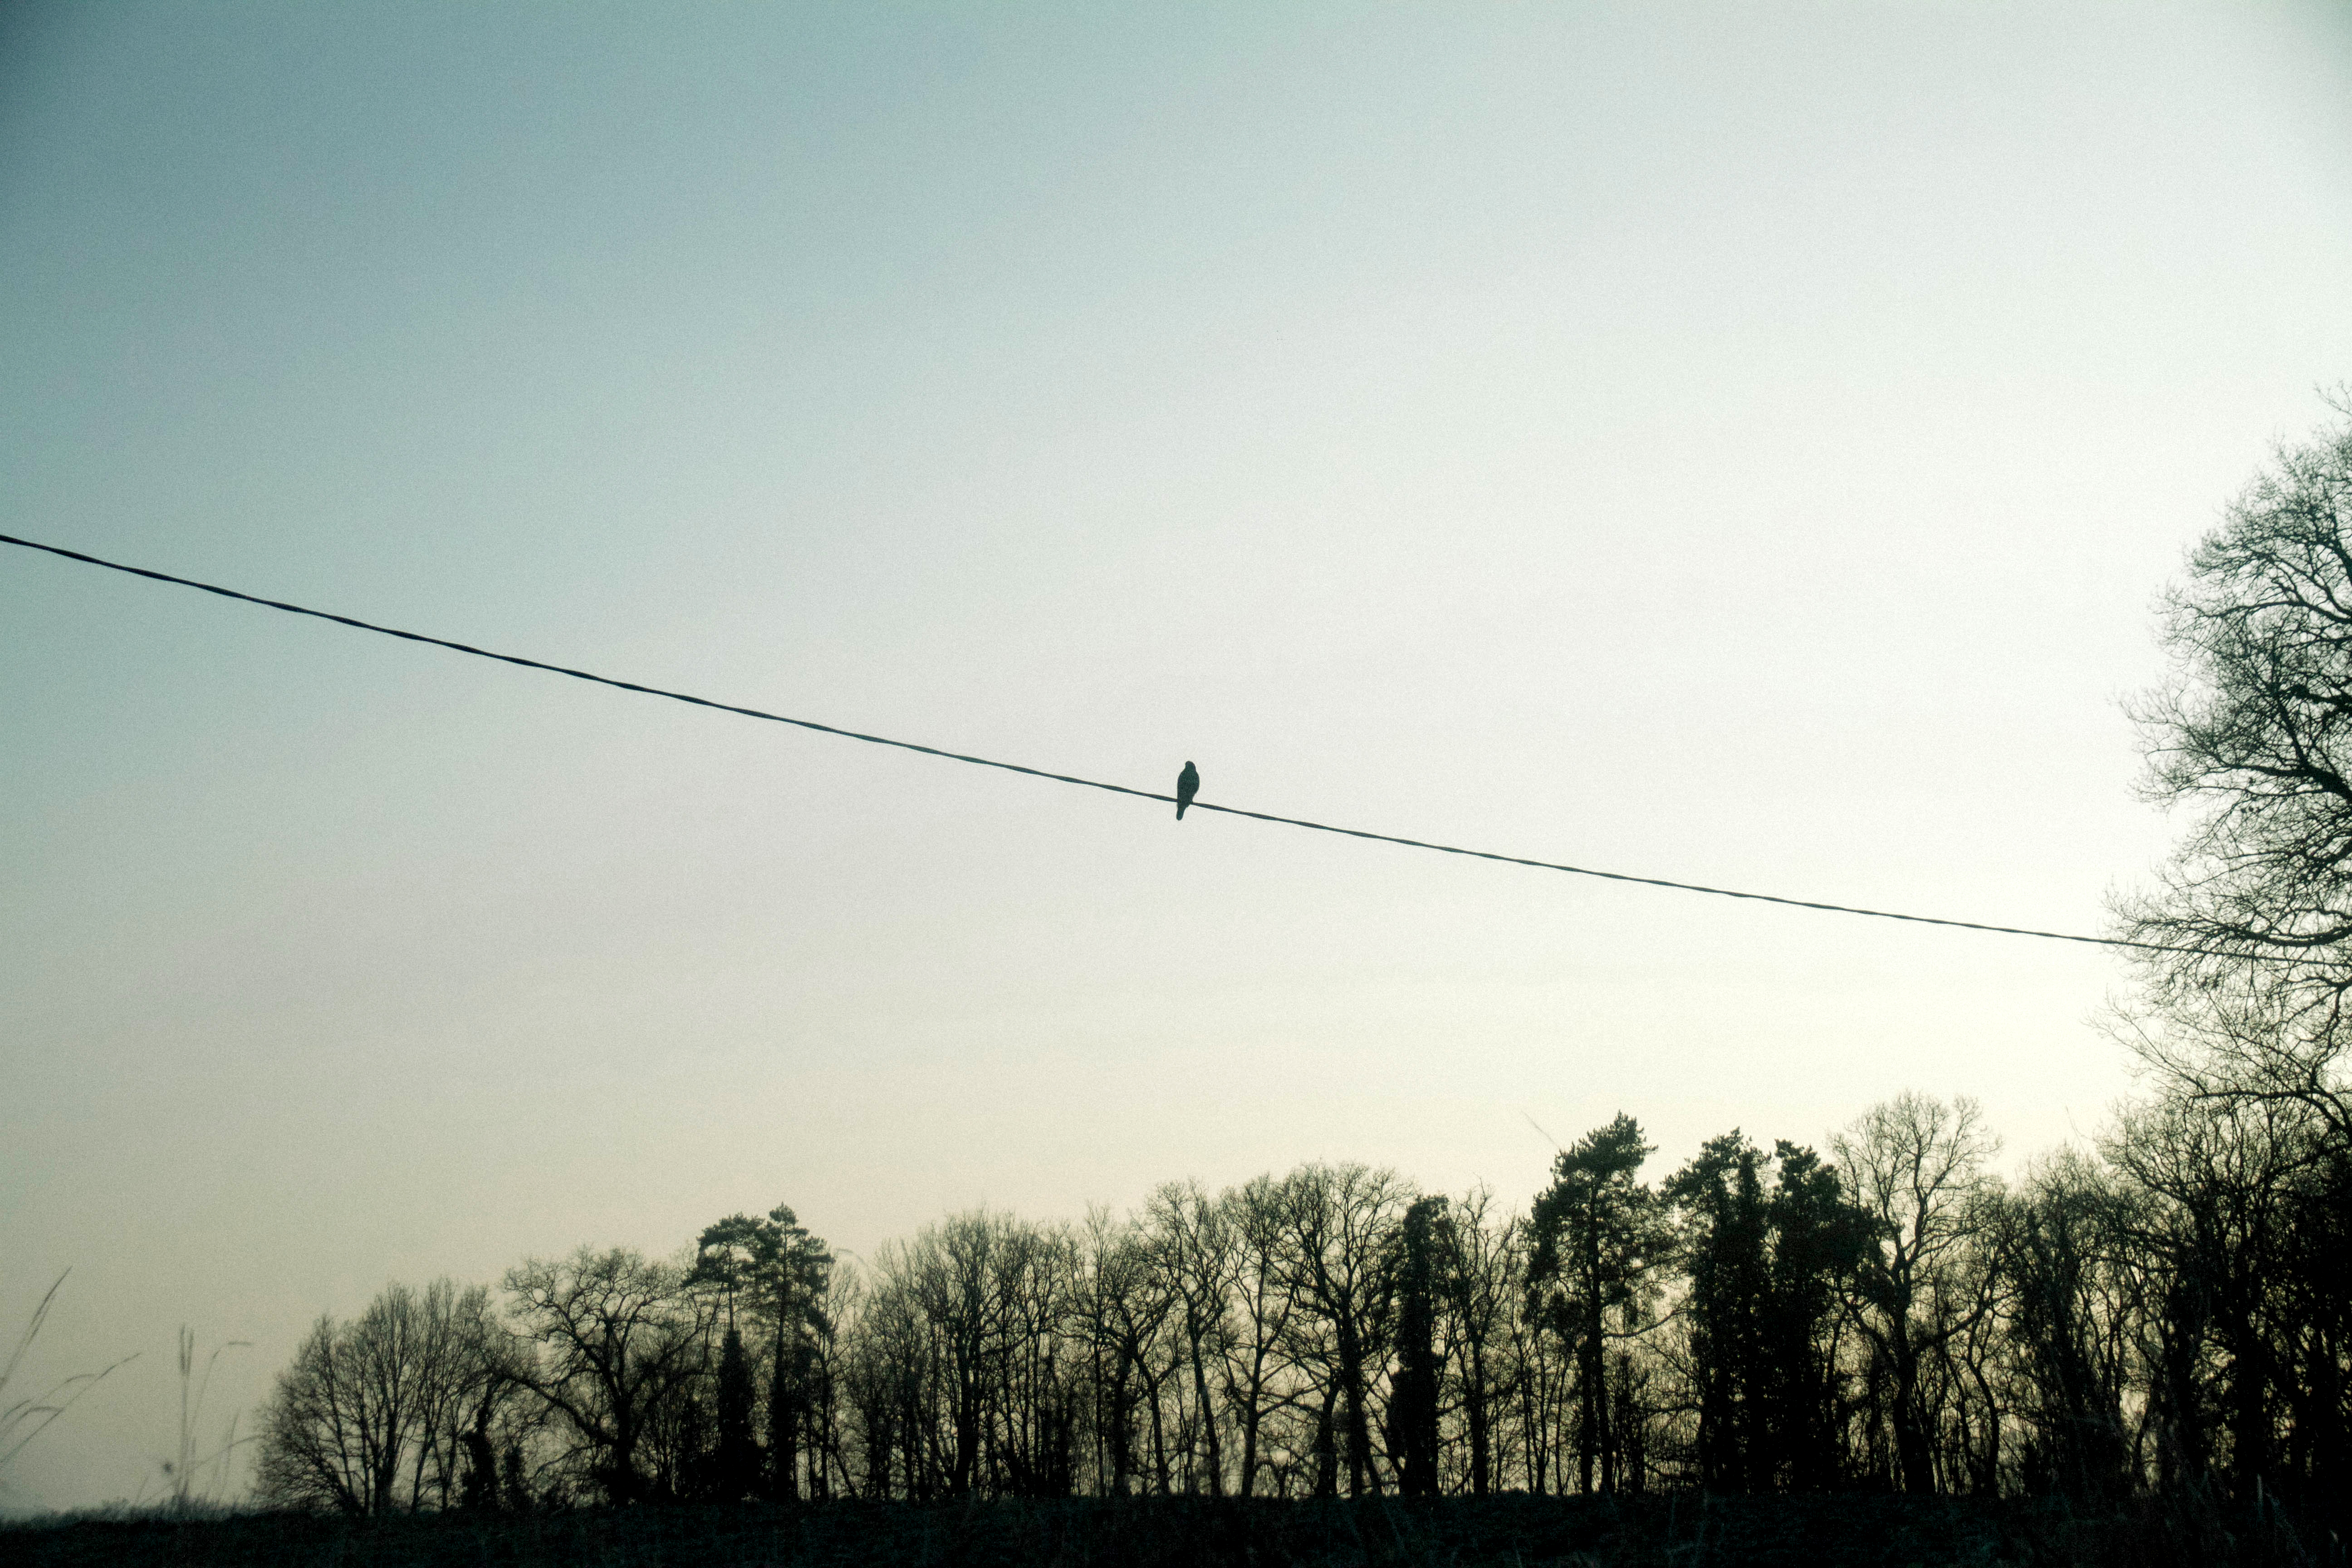 Bird On Wire, Tree, Wire, Plants, Electric, HQ Photo